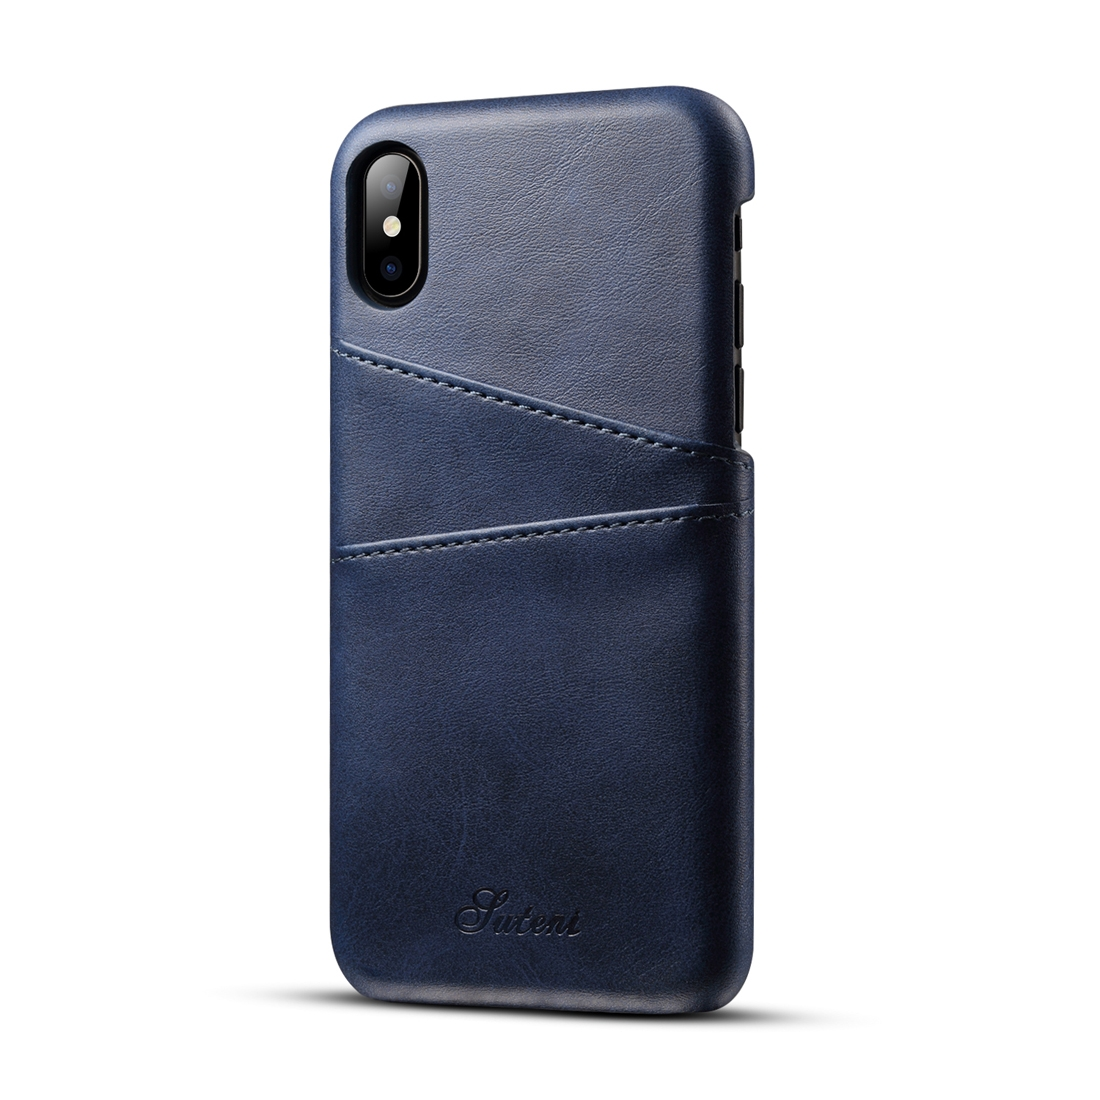 size 40 2bd09 5b73f Suteni Calf Texture Protective Case for iPhone X / XS with Card Slots (Blue)